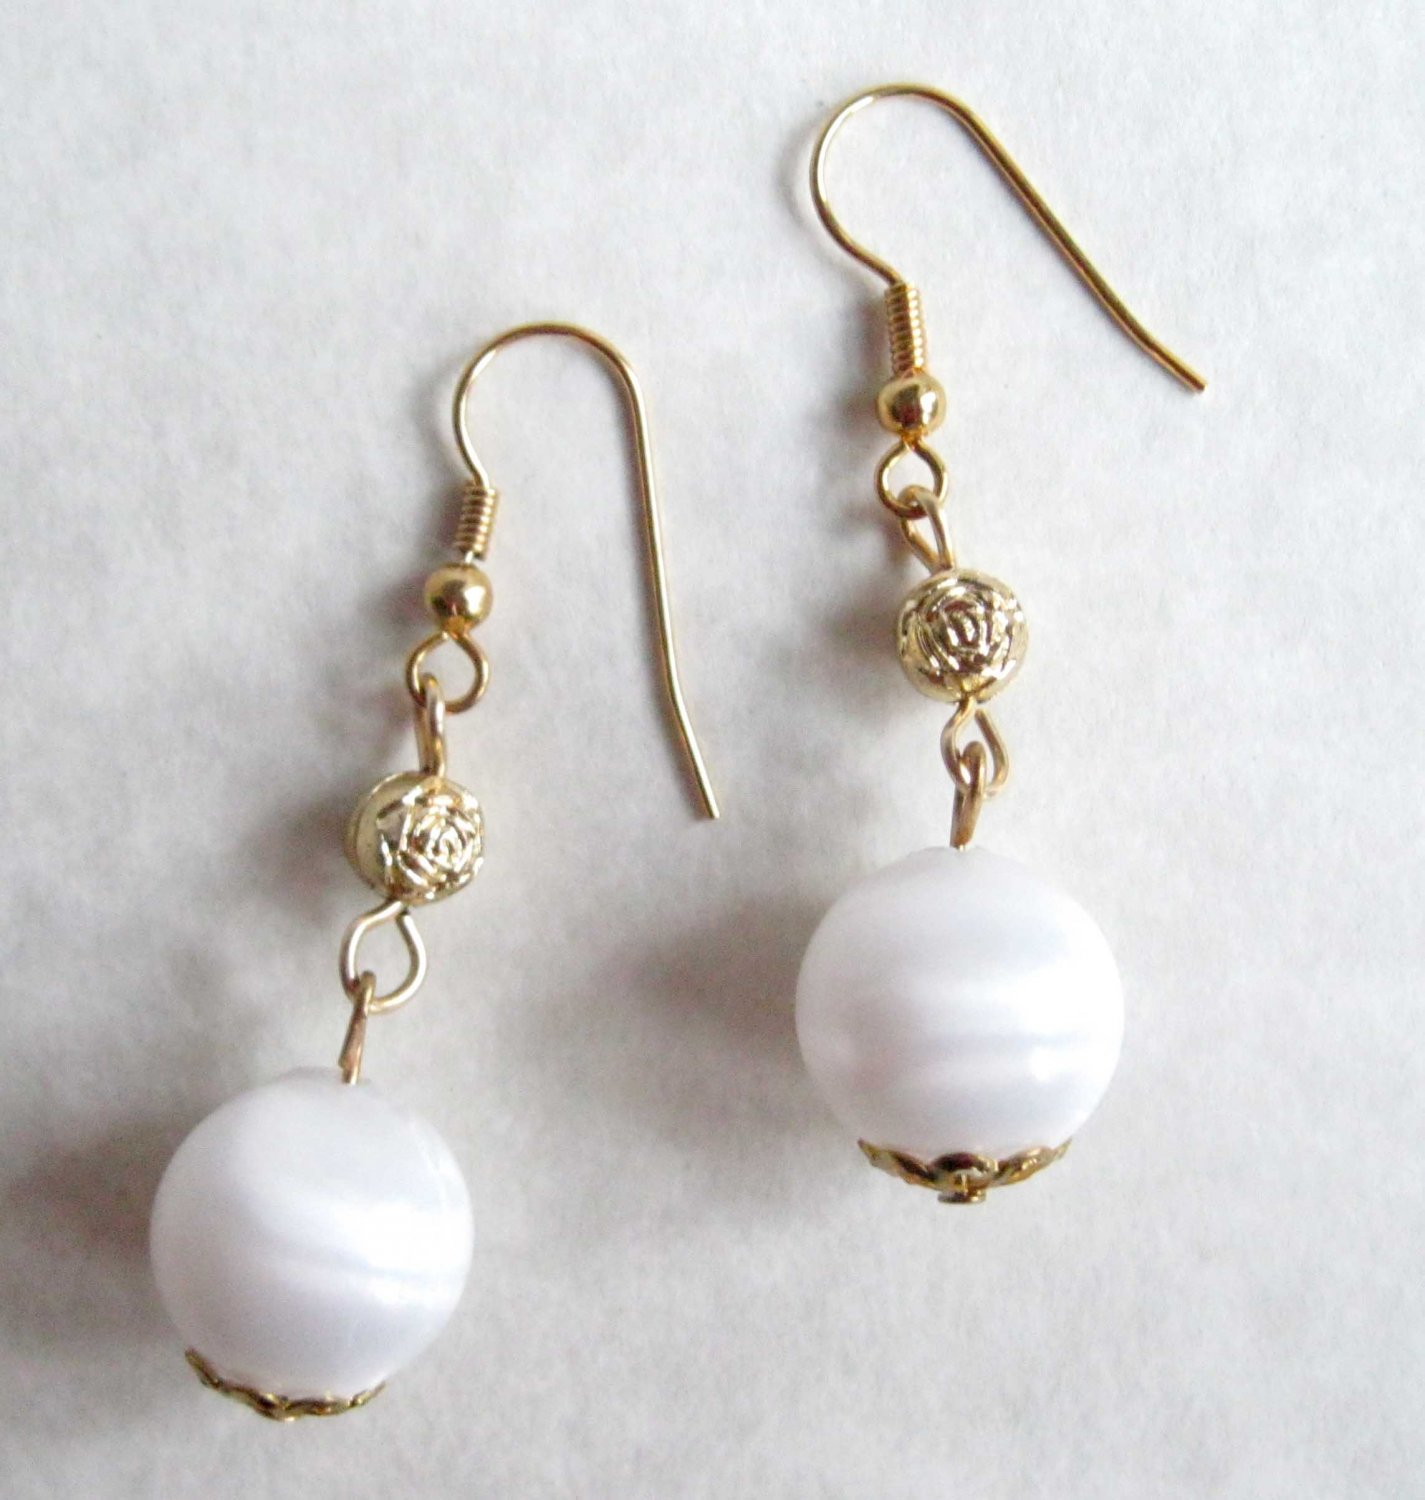 Gold and white drop earrings fashion jewelry